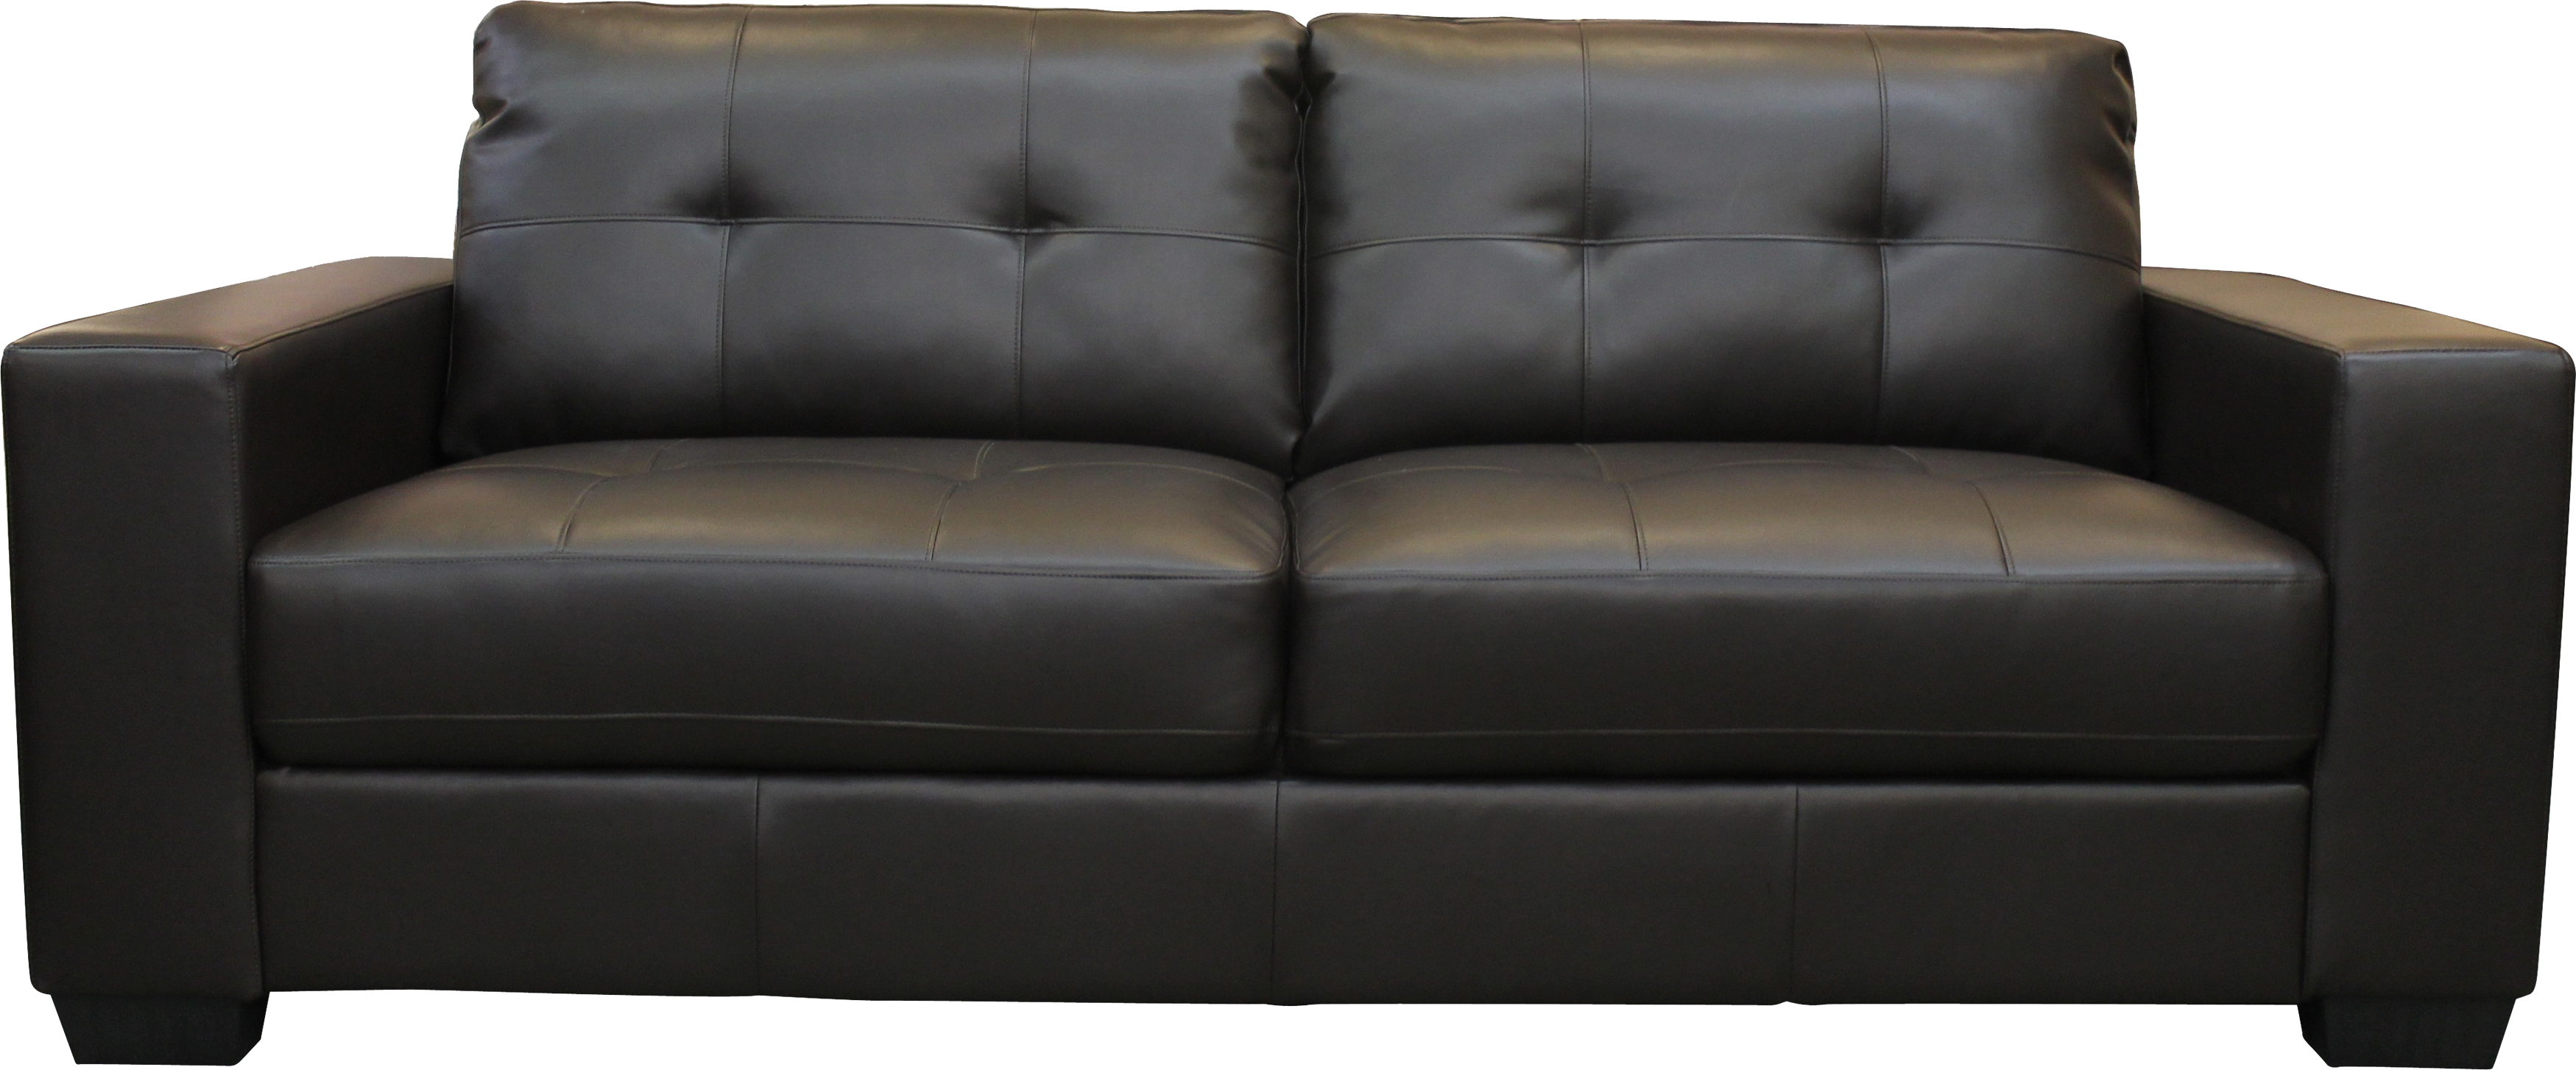 leather sofa. Leather sofas are an important…   by Nicholes